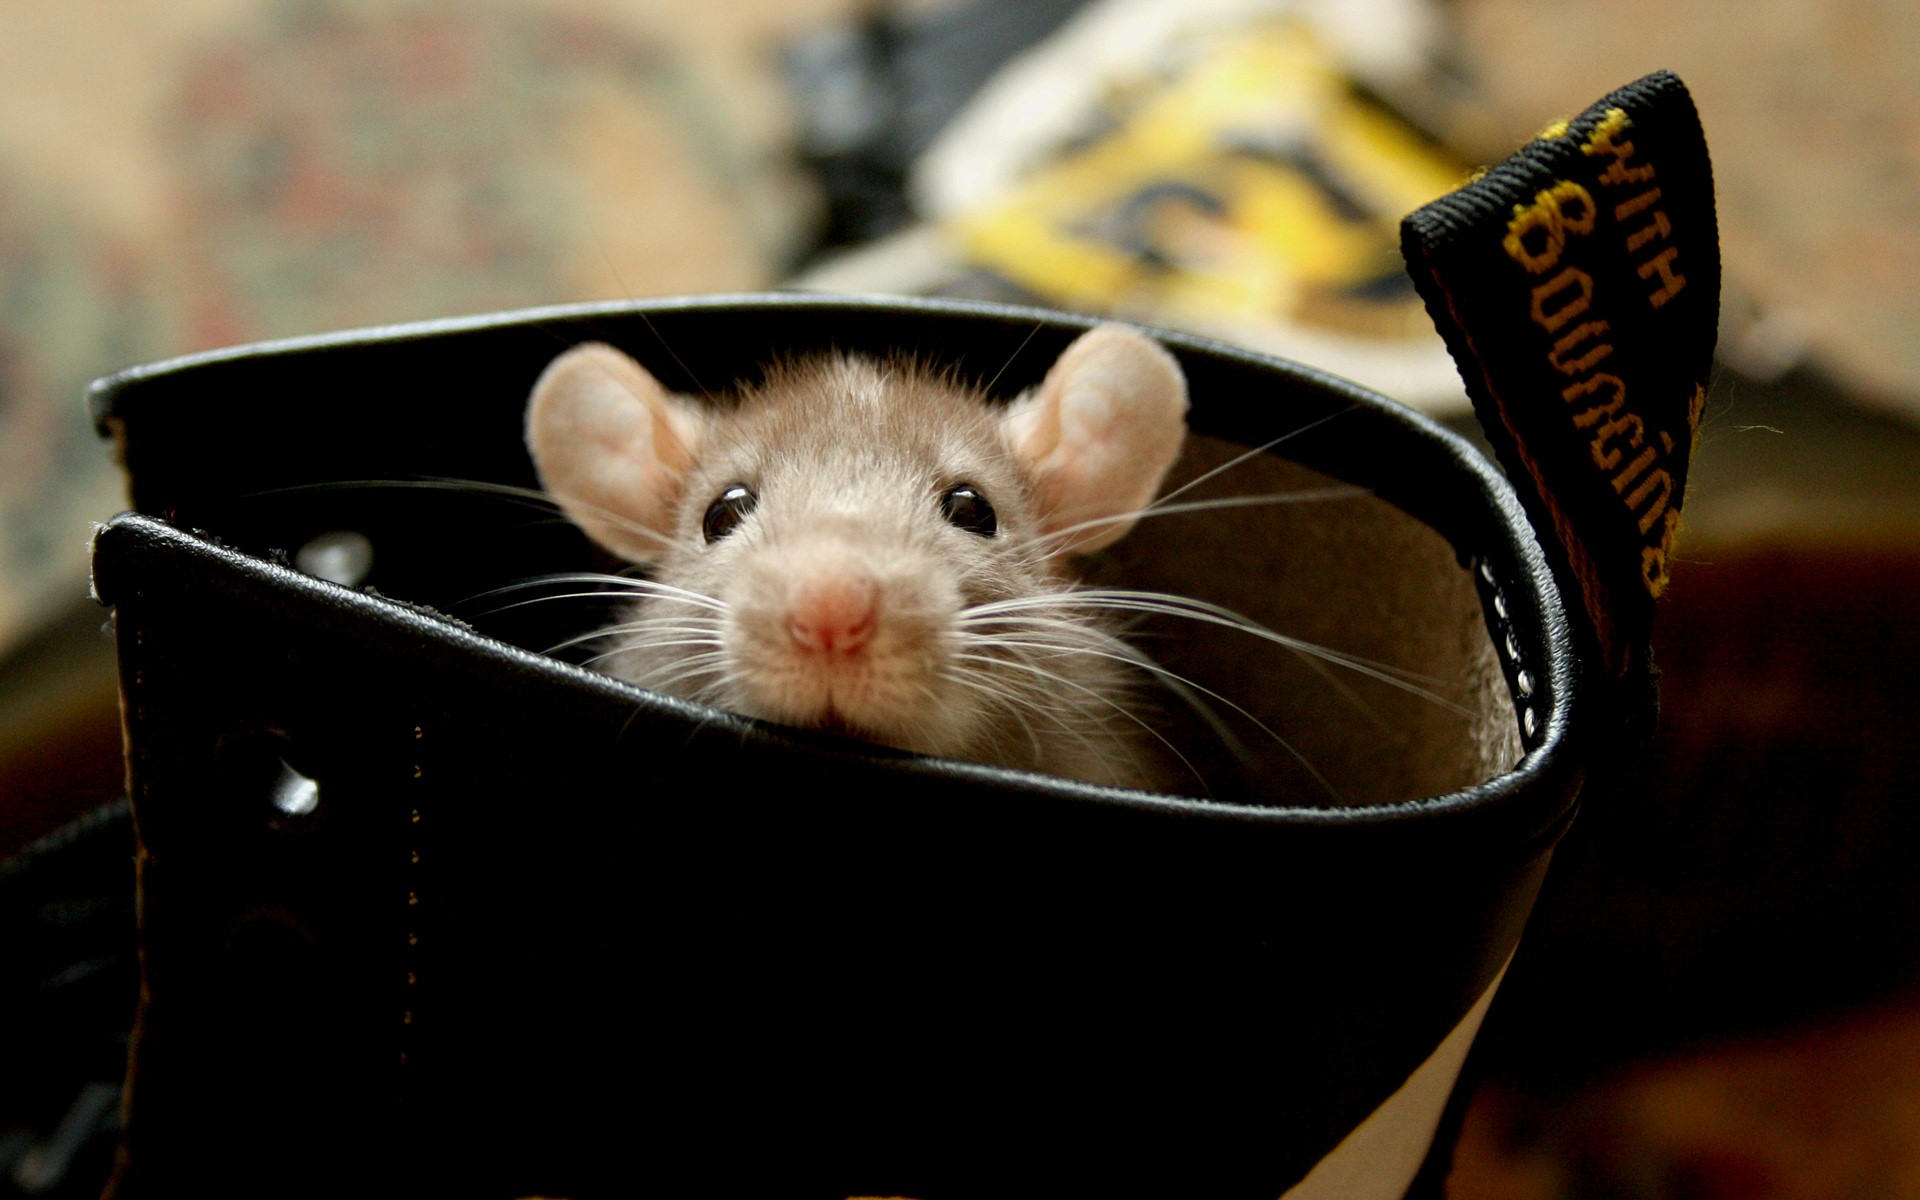 Beautiful Cute Mouse in Shoes Wallpaper Free Download | HD Wallpapers